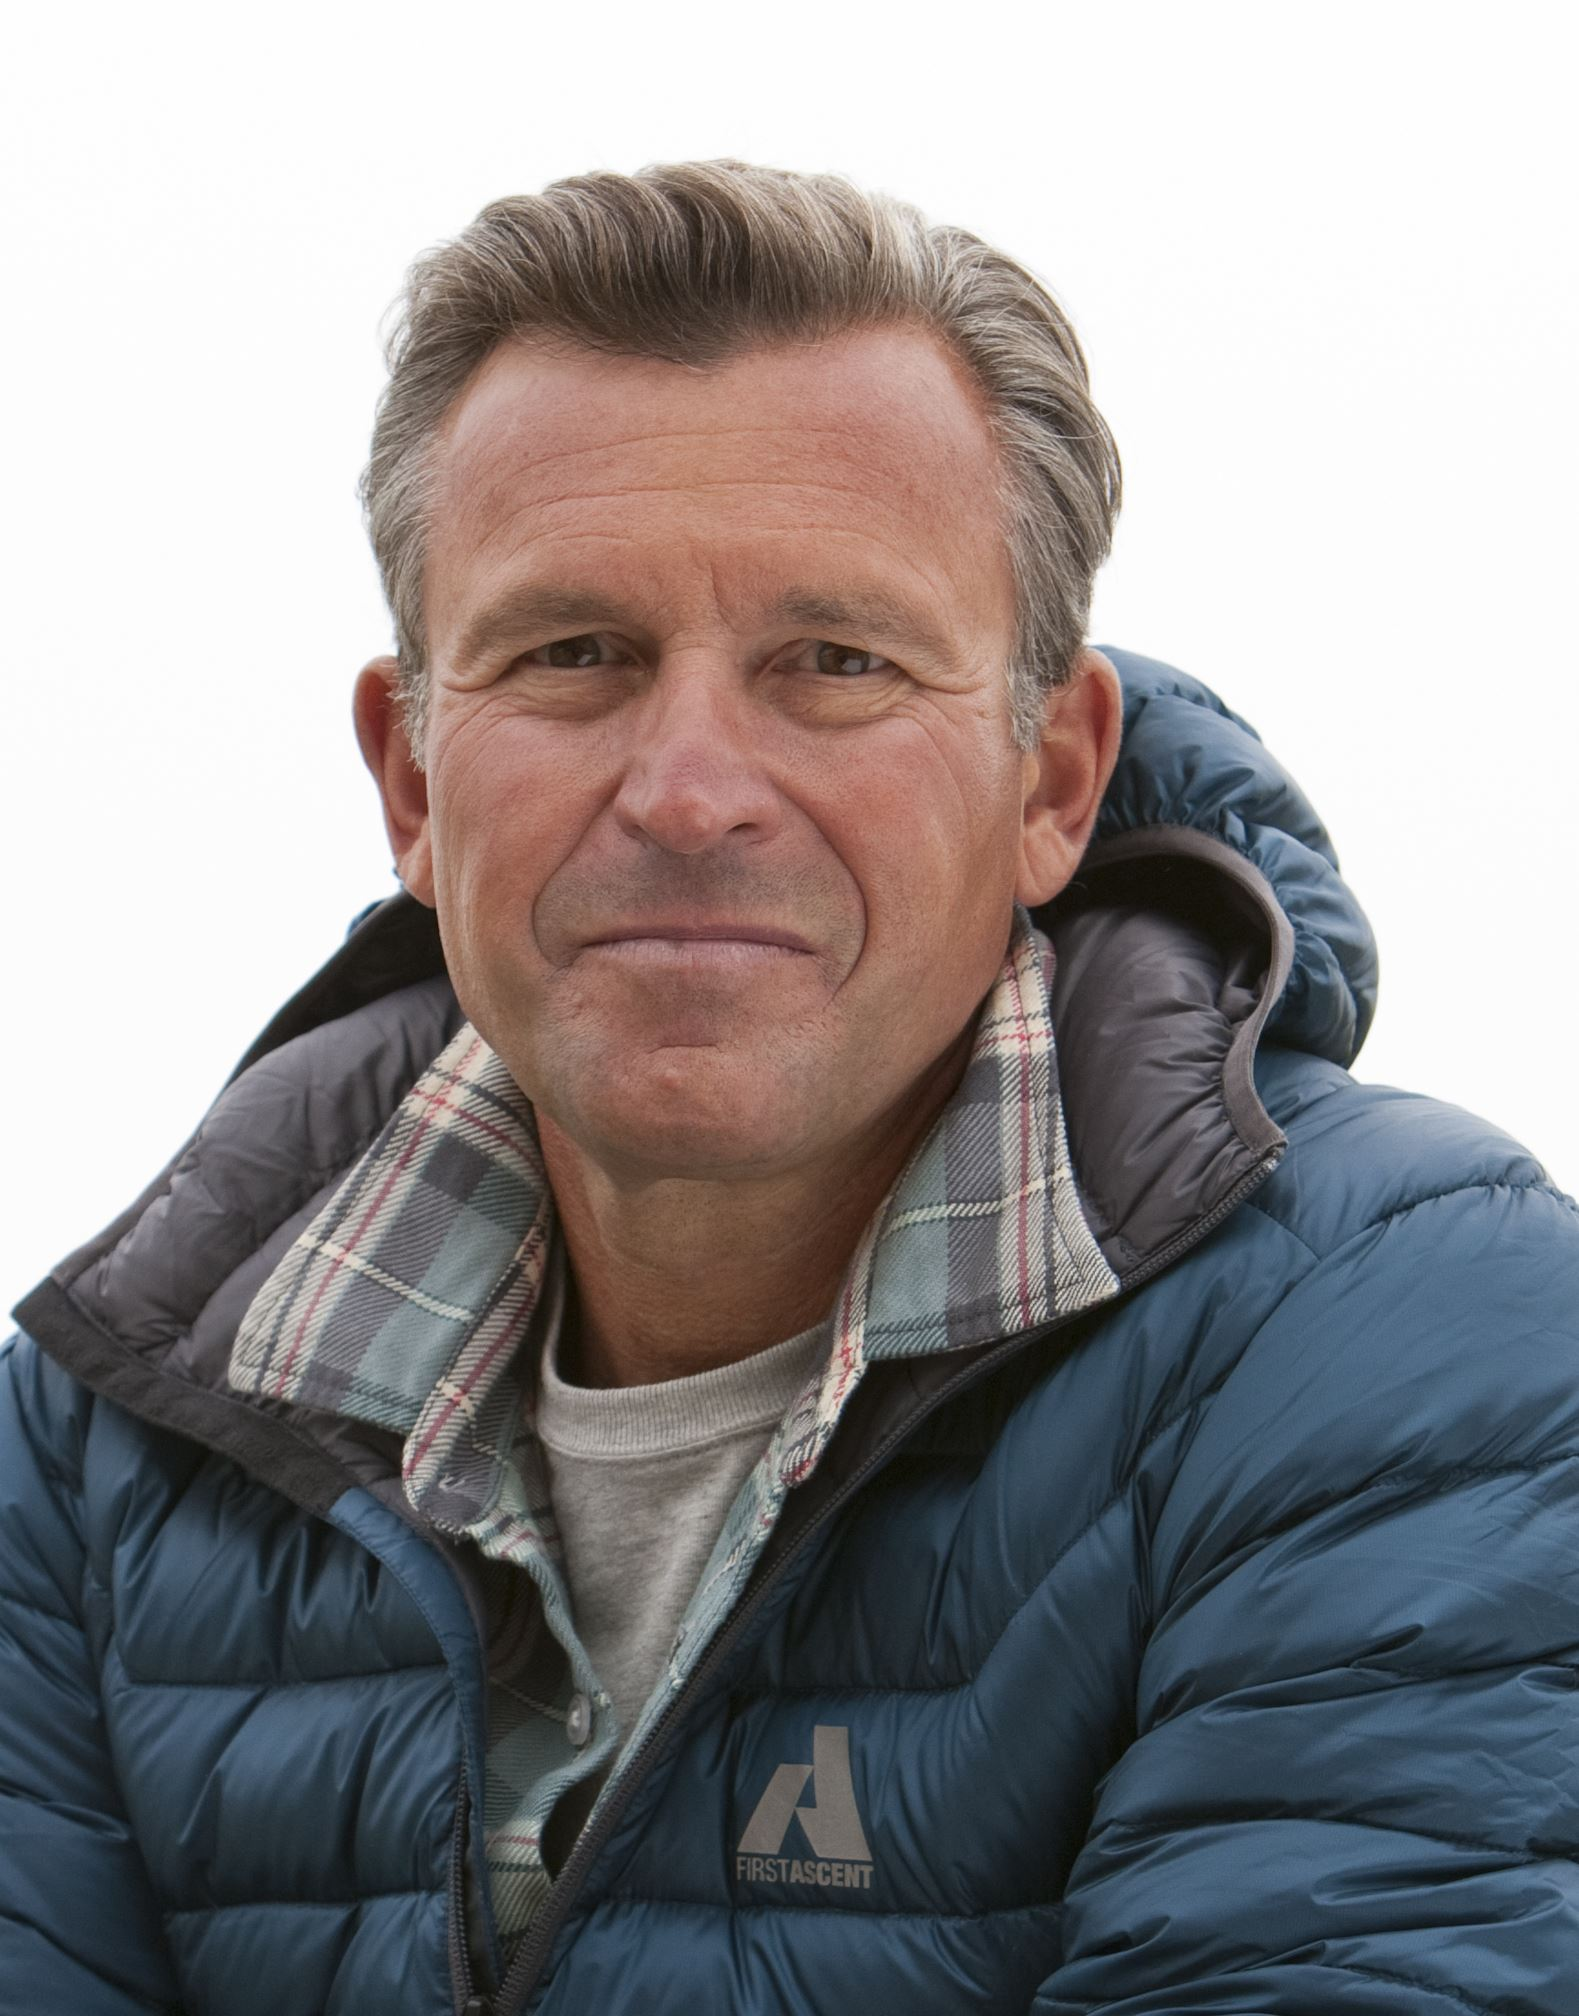 Ed Viesturs head shot